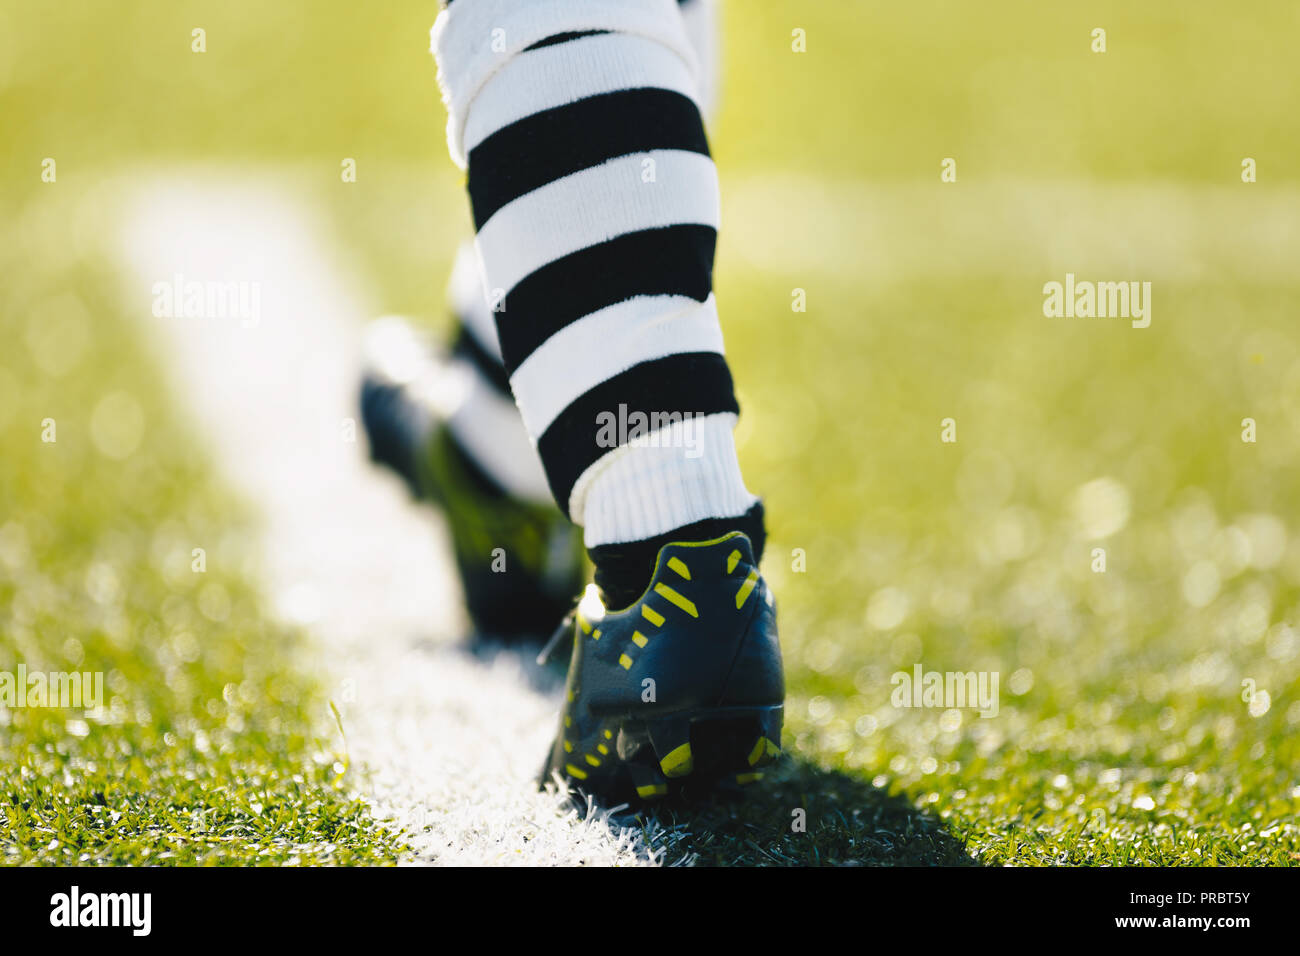 Legs of a soccer player. Football player on a grass pitch. Soccer player in professional football boots cleats and striped soccer socks - Stock Image